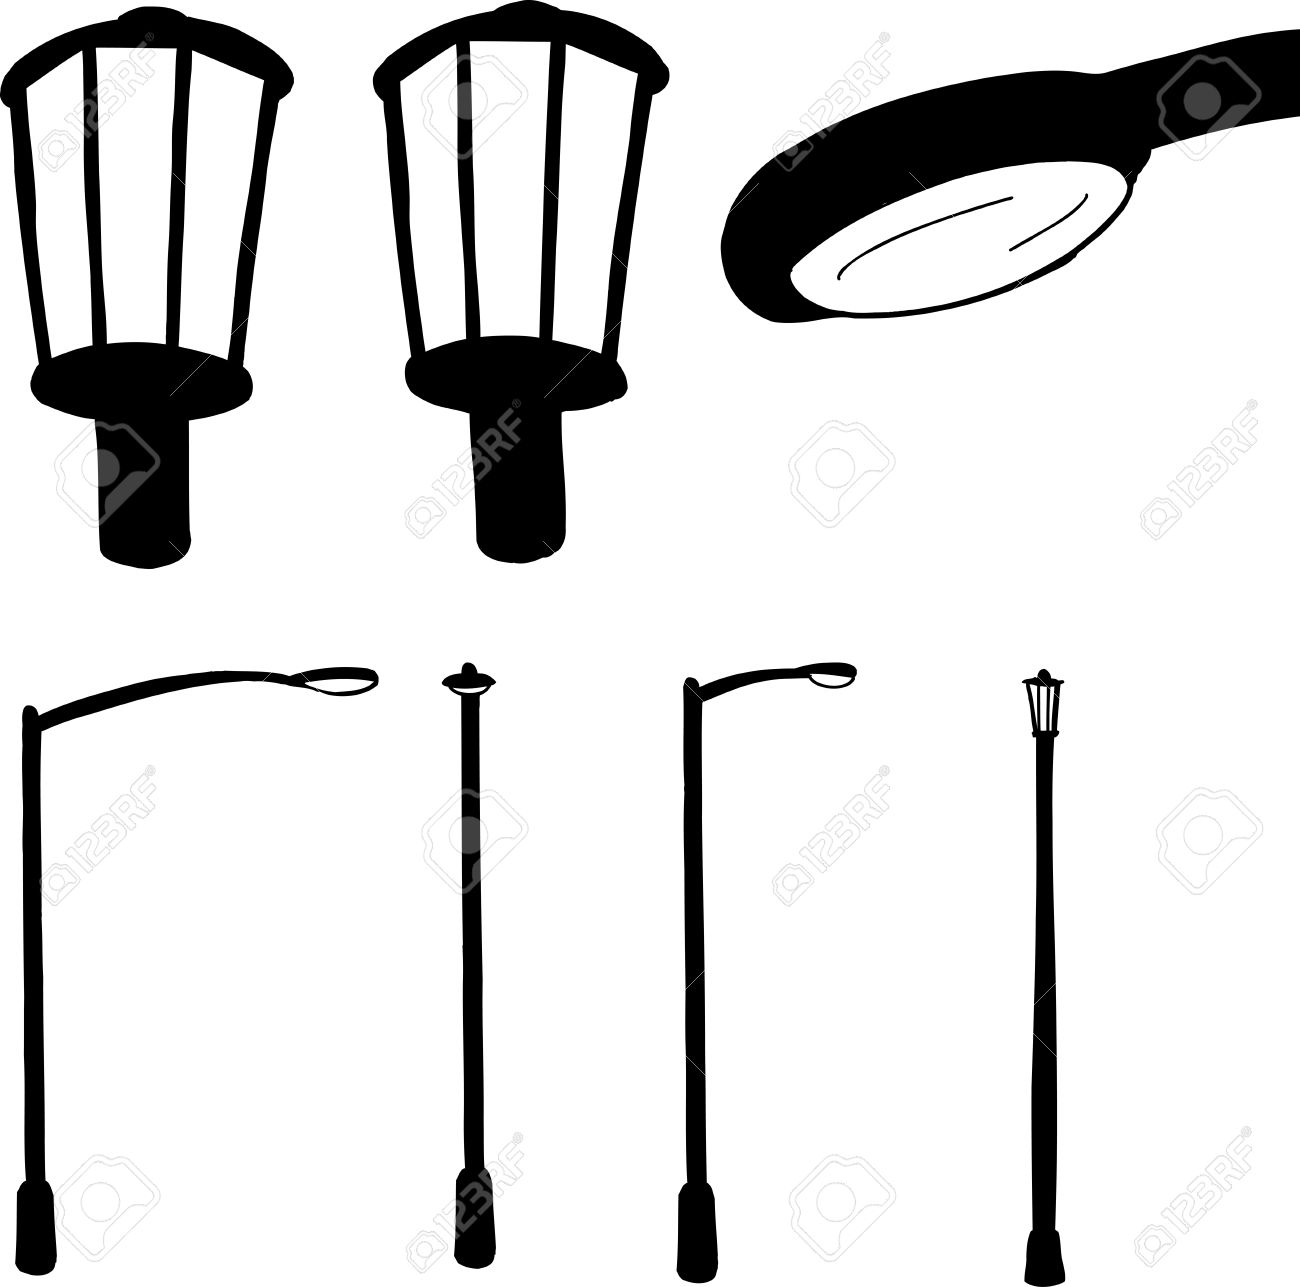 Group Of Modern And Antique Street Lamps In Silhouette Royalty ... for Modern Street Lamps  55nar